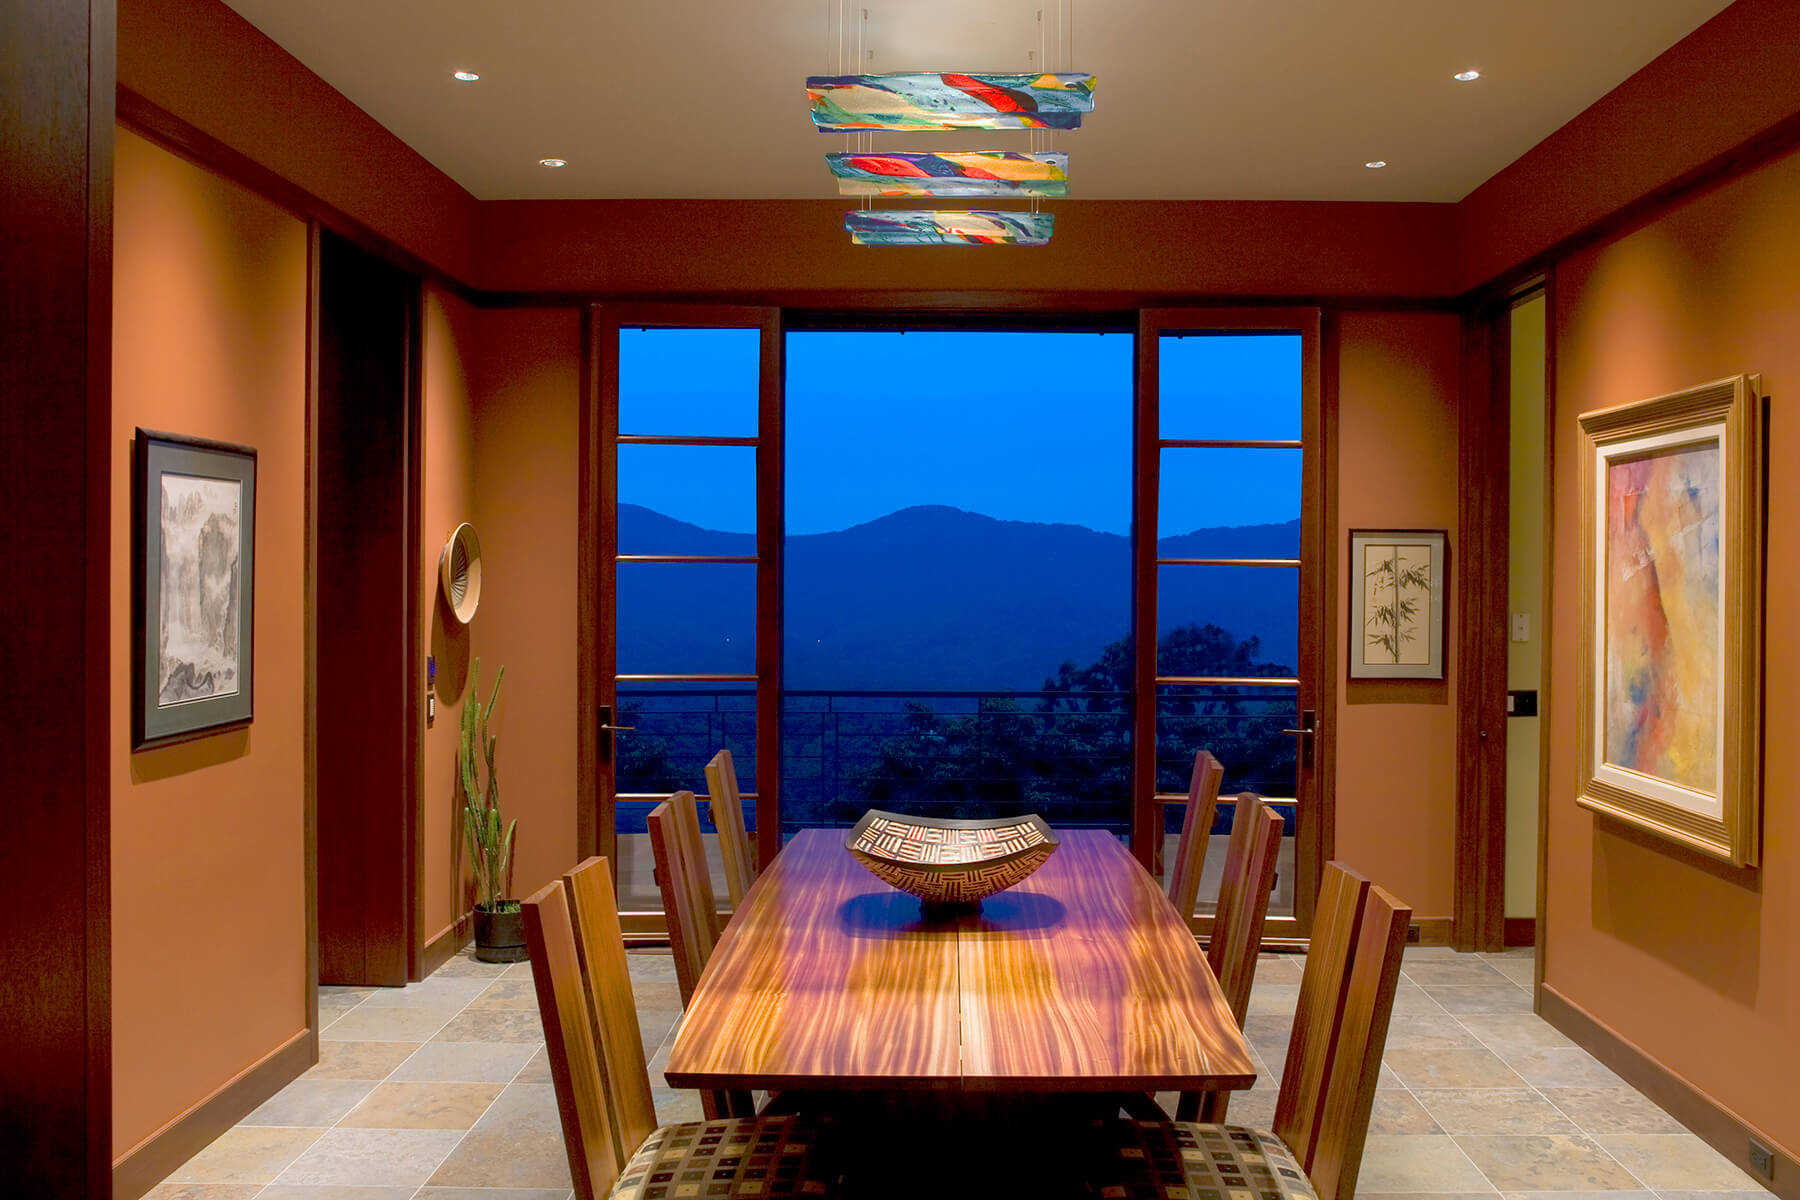 The North Mountain Wine Room commercial renovation project by Samsel Architects